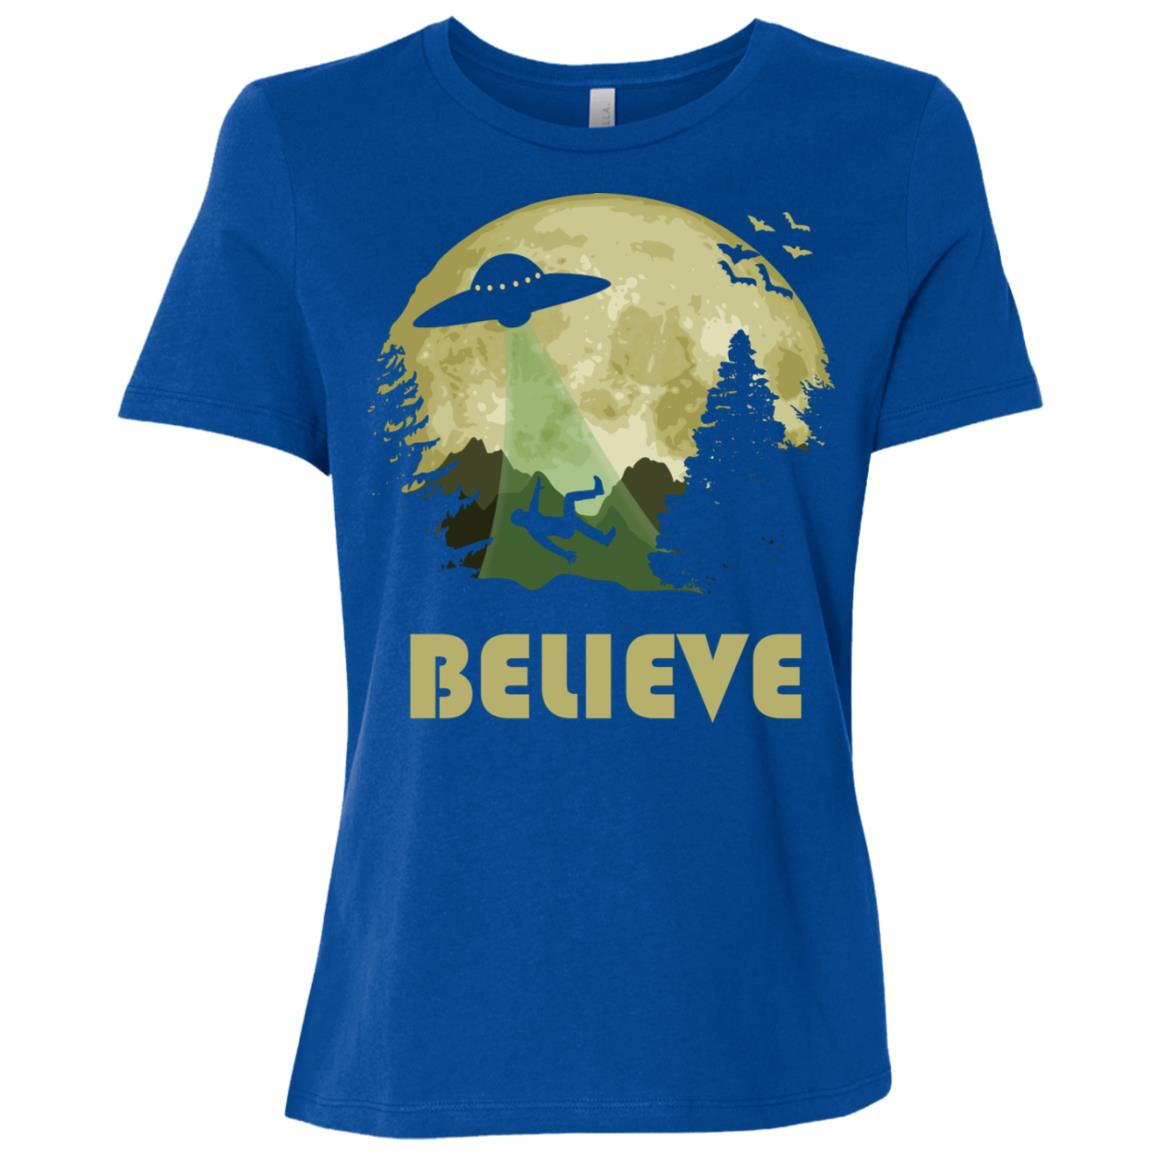 Believe – The Truth Is Out There Women Short Sleeve T-Shirt